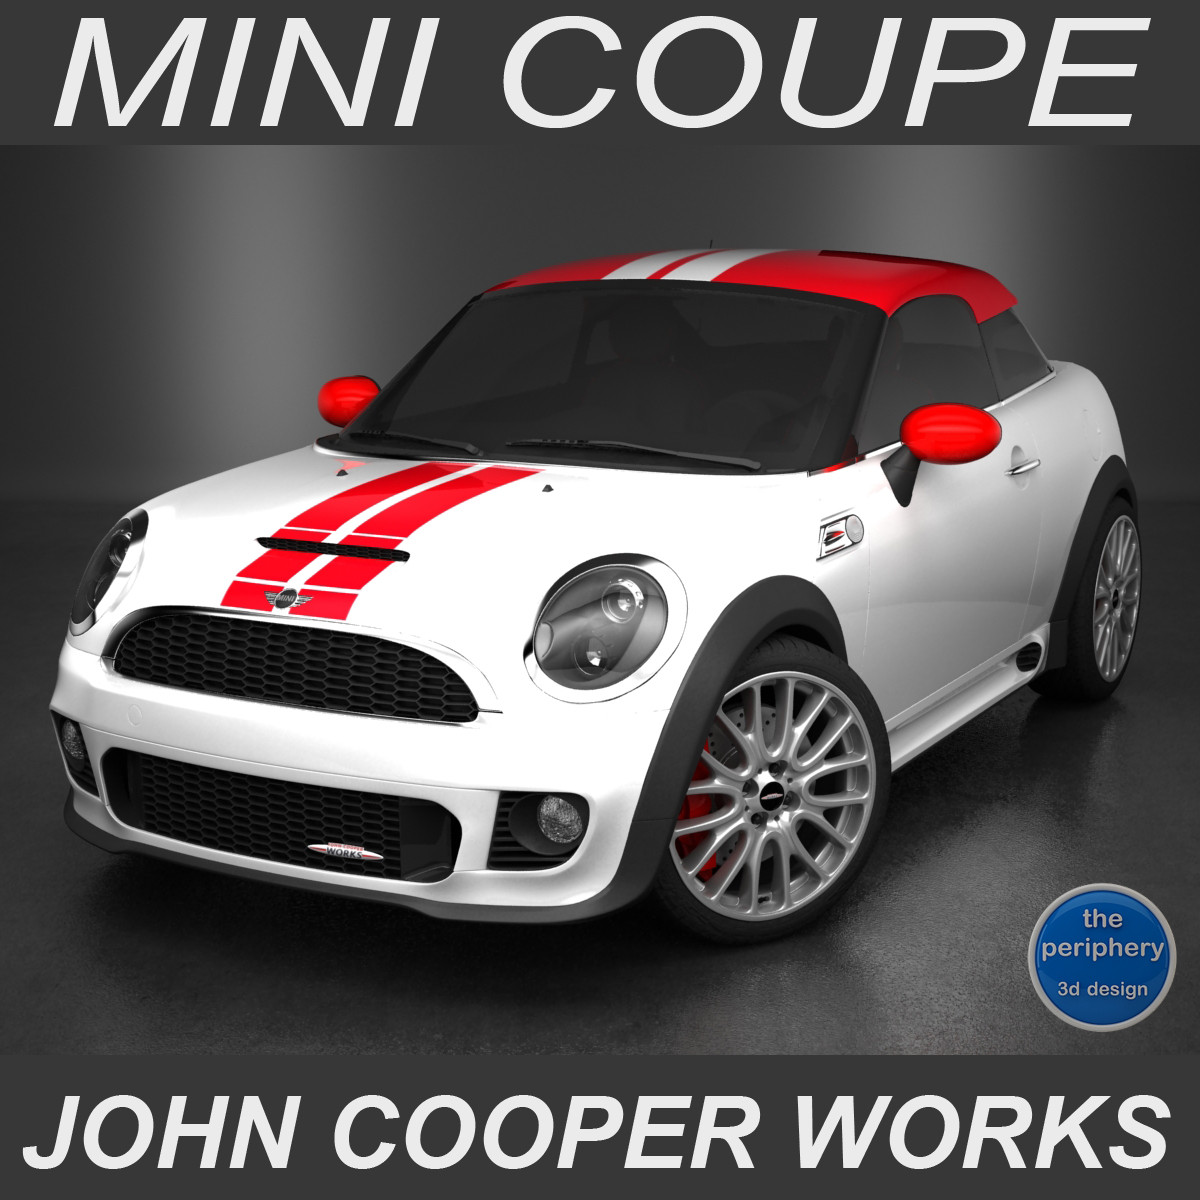 Mini_Coupe_01.jpg